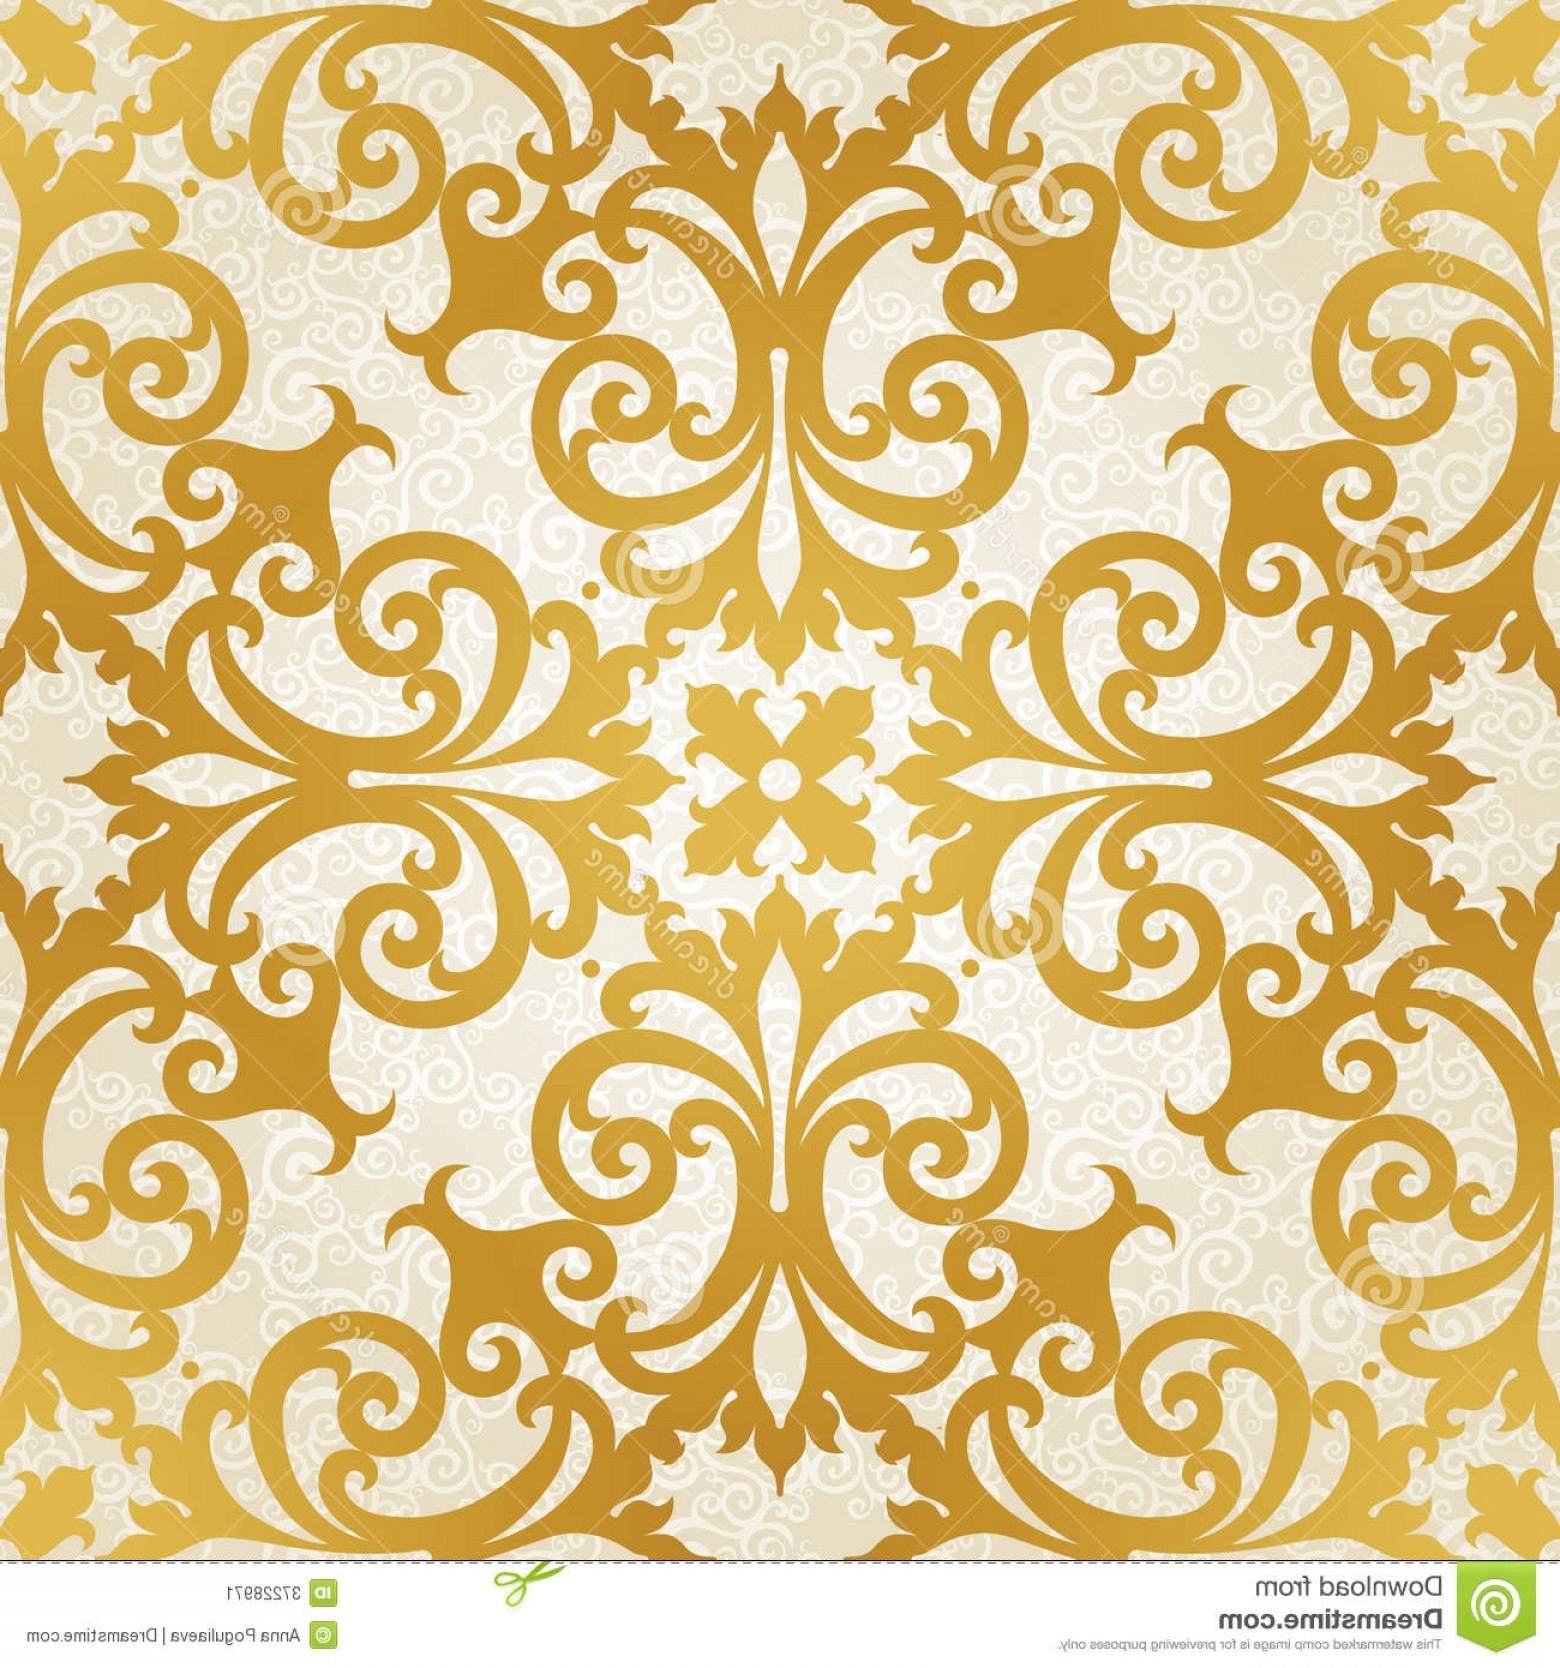 Victorian Motif Vector: Stock Image Vector Seamless Pattern Swirls Floral Motifs Retro Style Golden Victorian Background Can Be Used Wallpaper Image